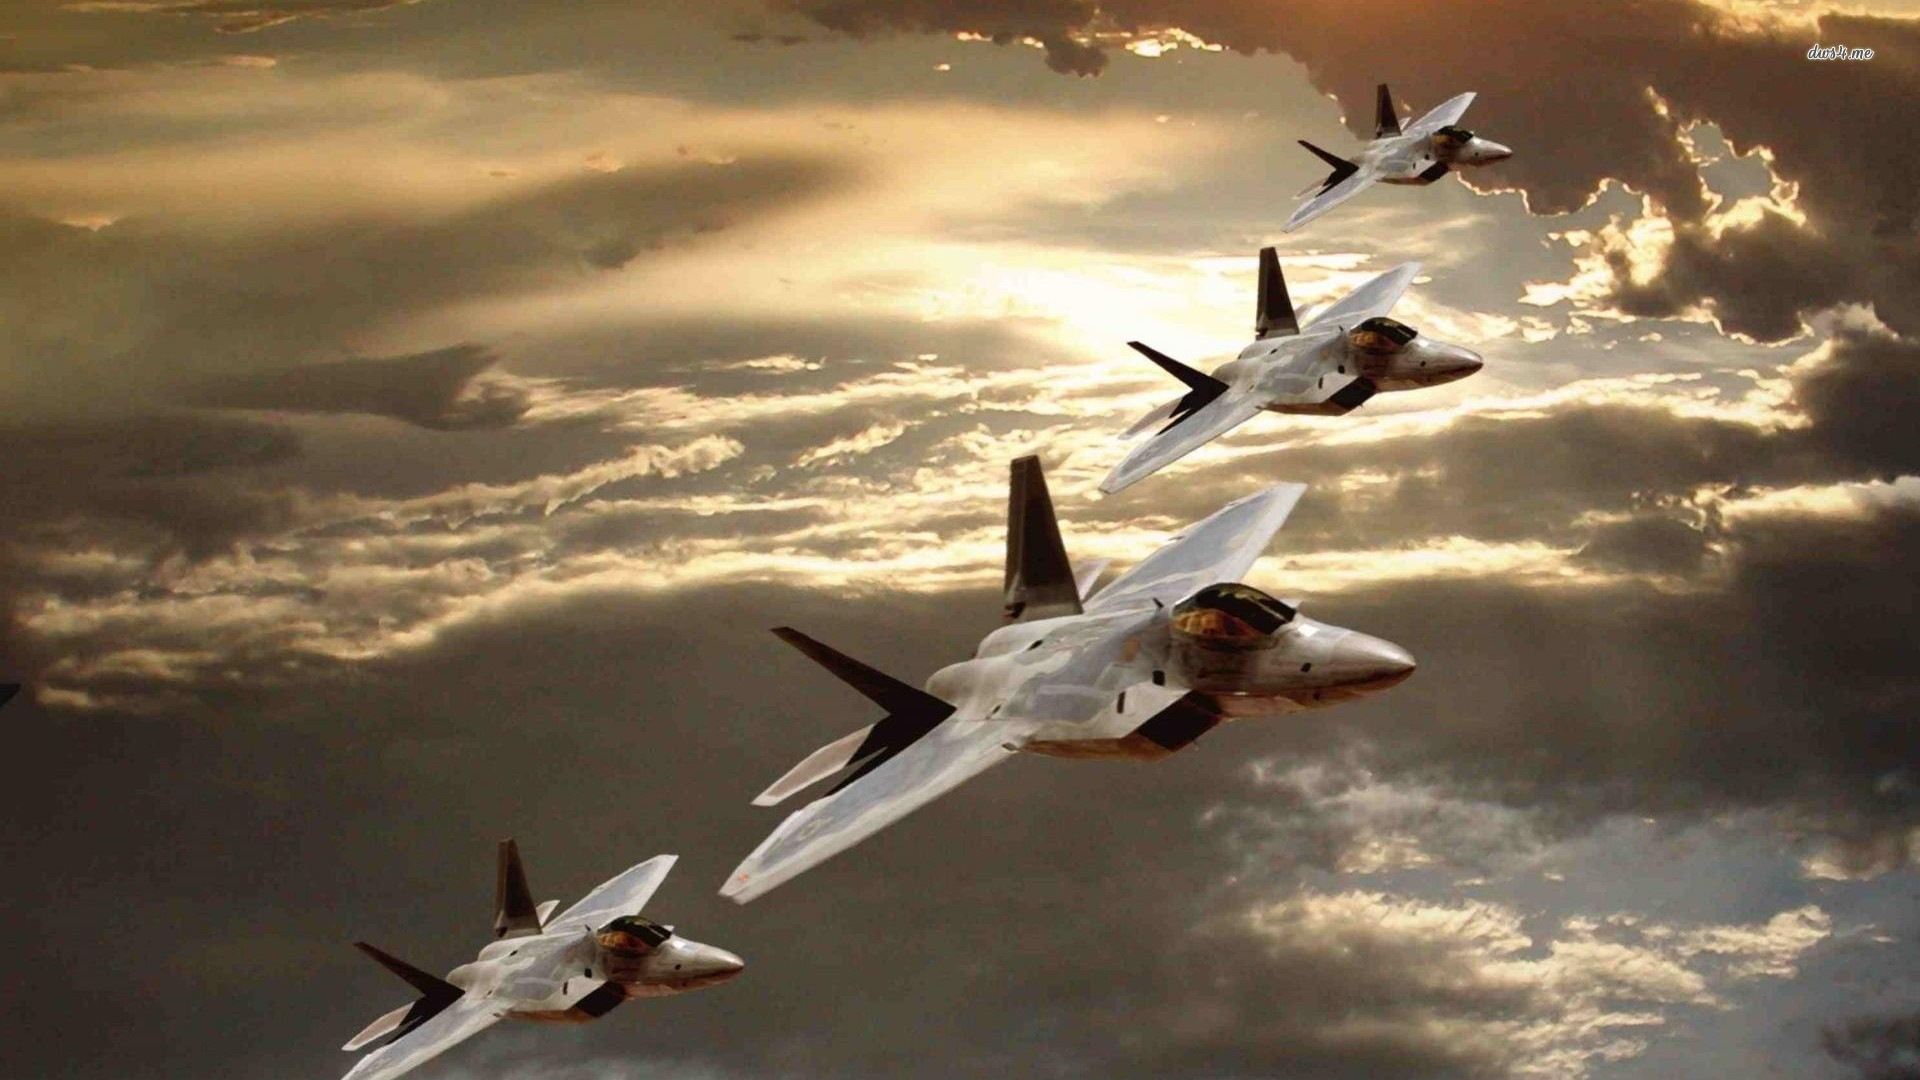 F22 Wallpapers Best HD Desktop Wallpapers Widescreen Wallpapers 1920x1080